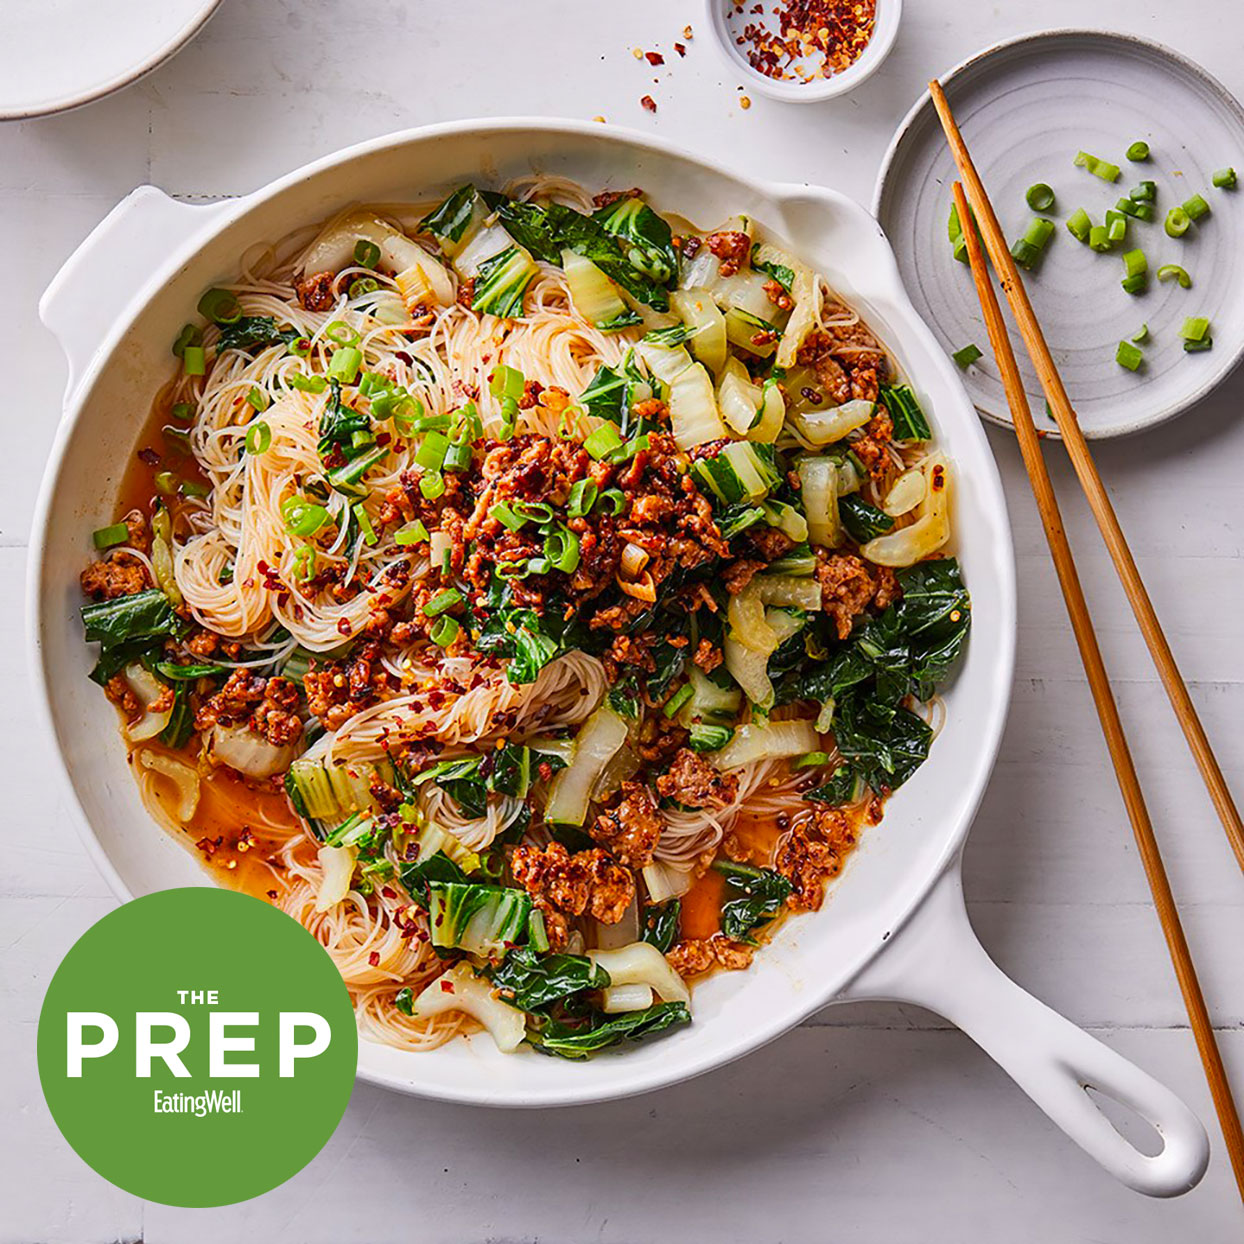 ThePrep: High-Protein Dinners to Keep You Full Till Bedtime